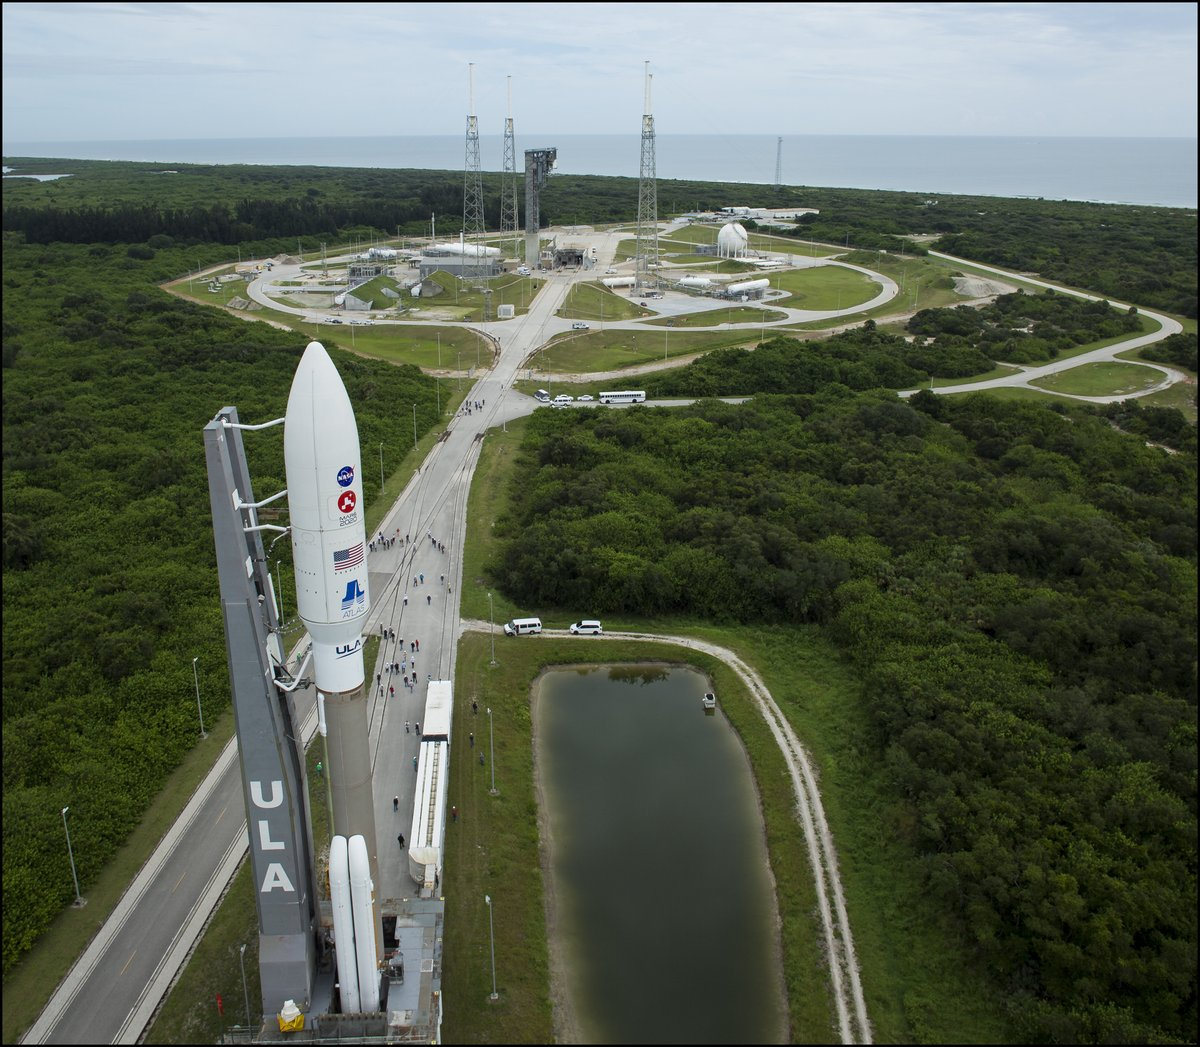 The @ulalaunch #AtlasV rocket carrying @NASAPersevere was rolled out of the Vertical Integration Facility the the launch pad at Space Launch Complex 41 this morning. #CountdownToMars   More 📷 - https://t.co/1C6QkuRetg https://t.co/eDg2uhzS47